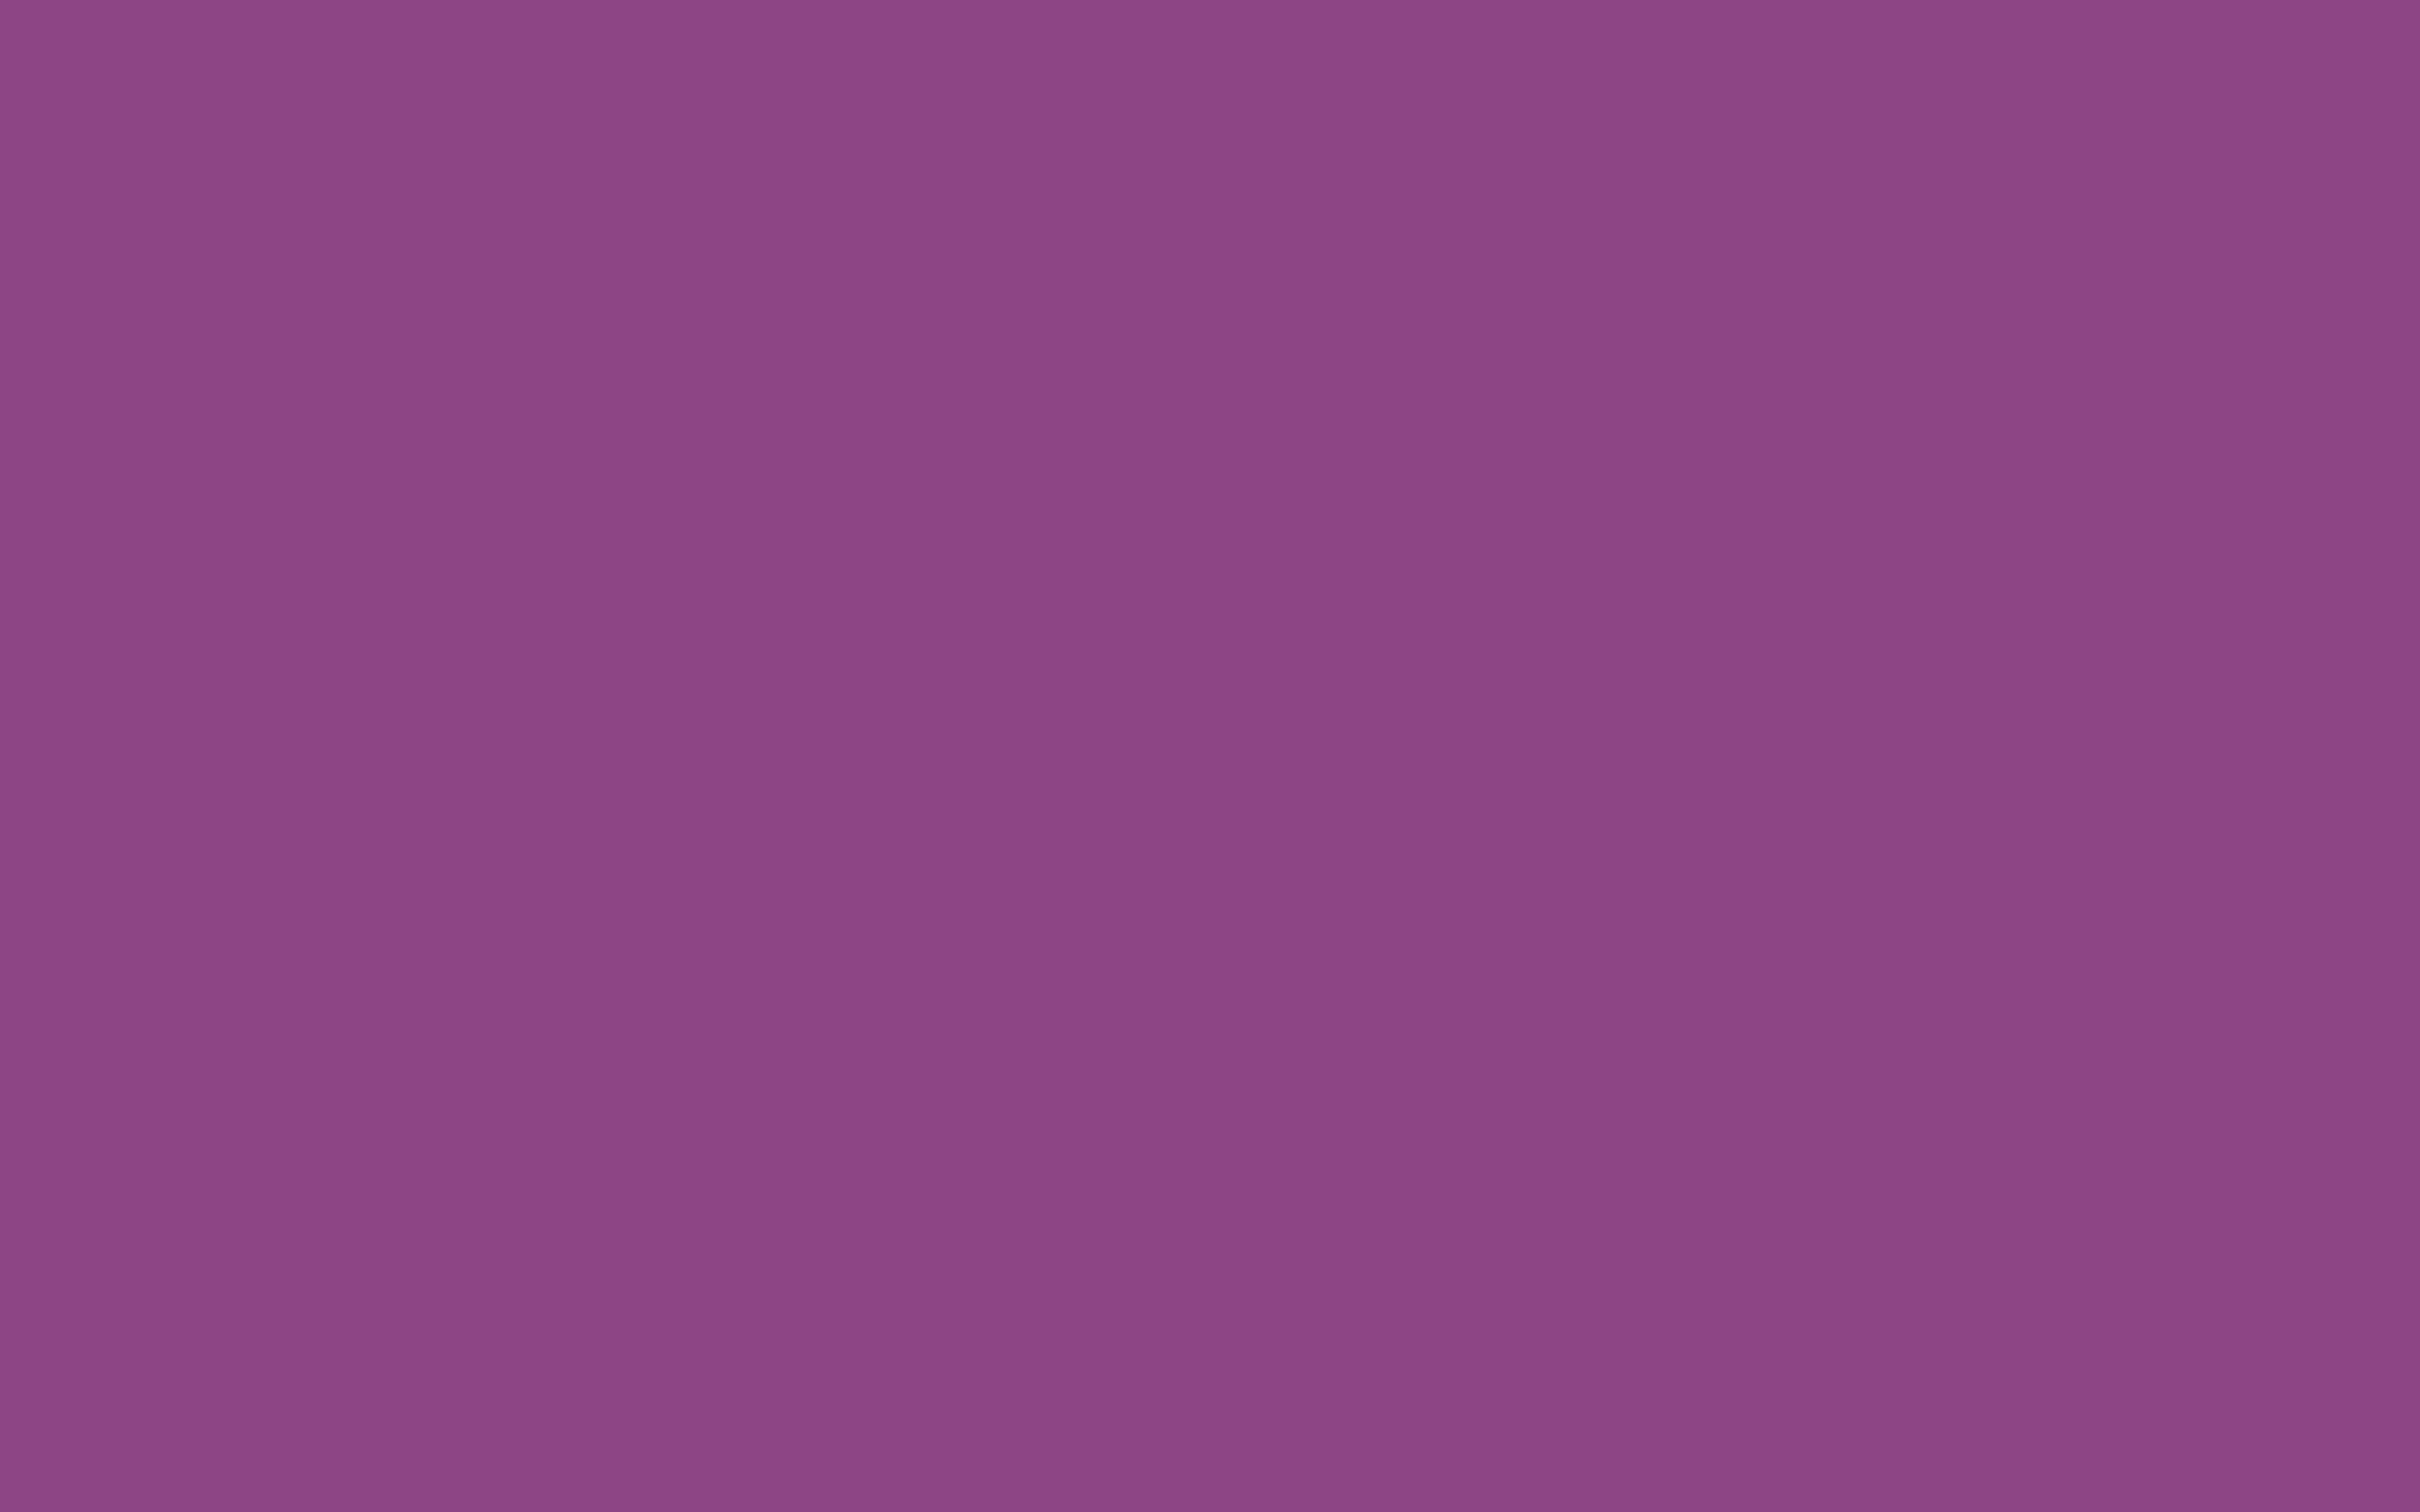 2880x1800 Plum Traditional Solid Color Background 2880x1800